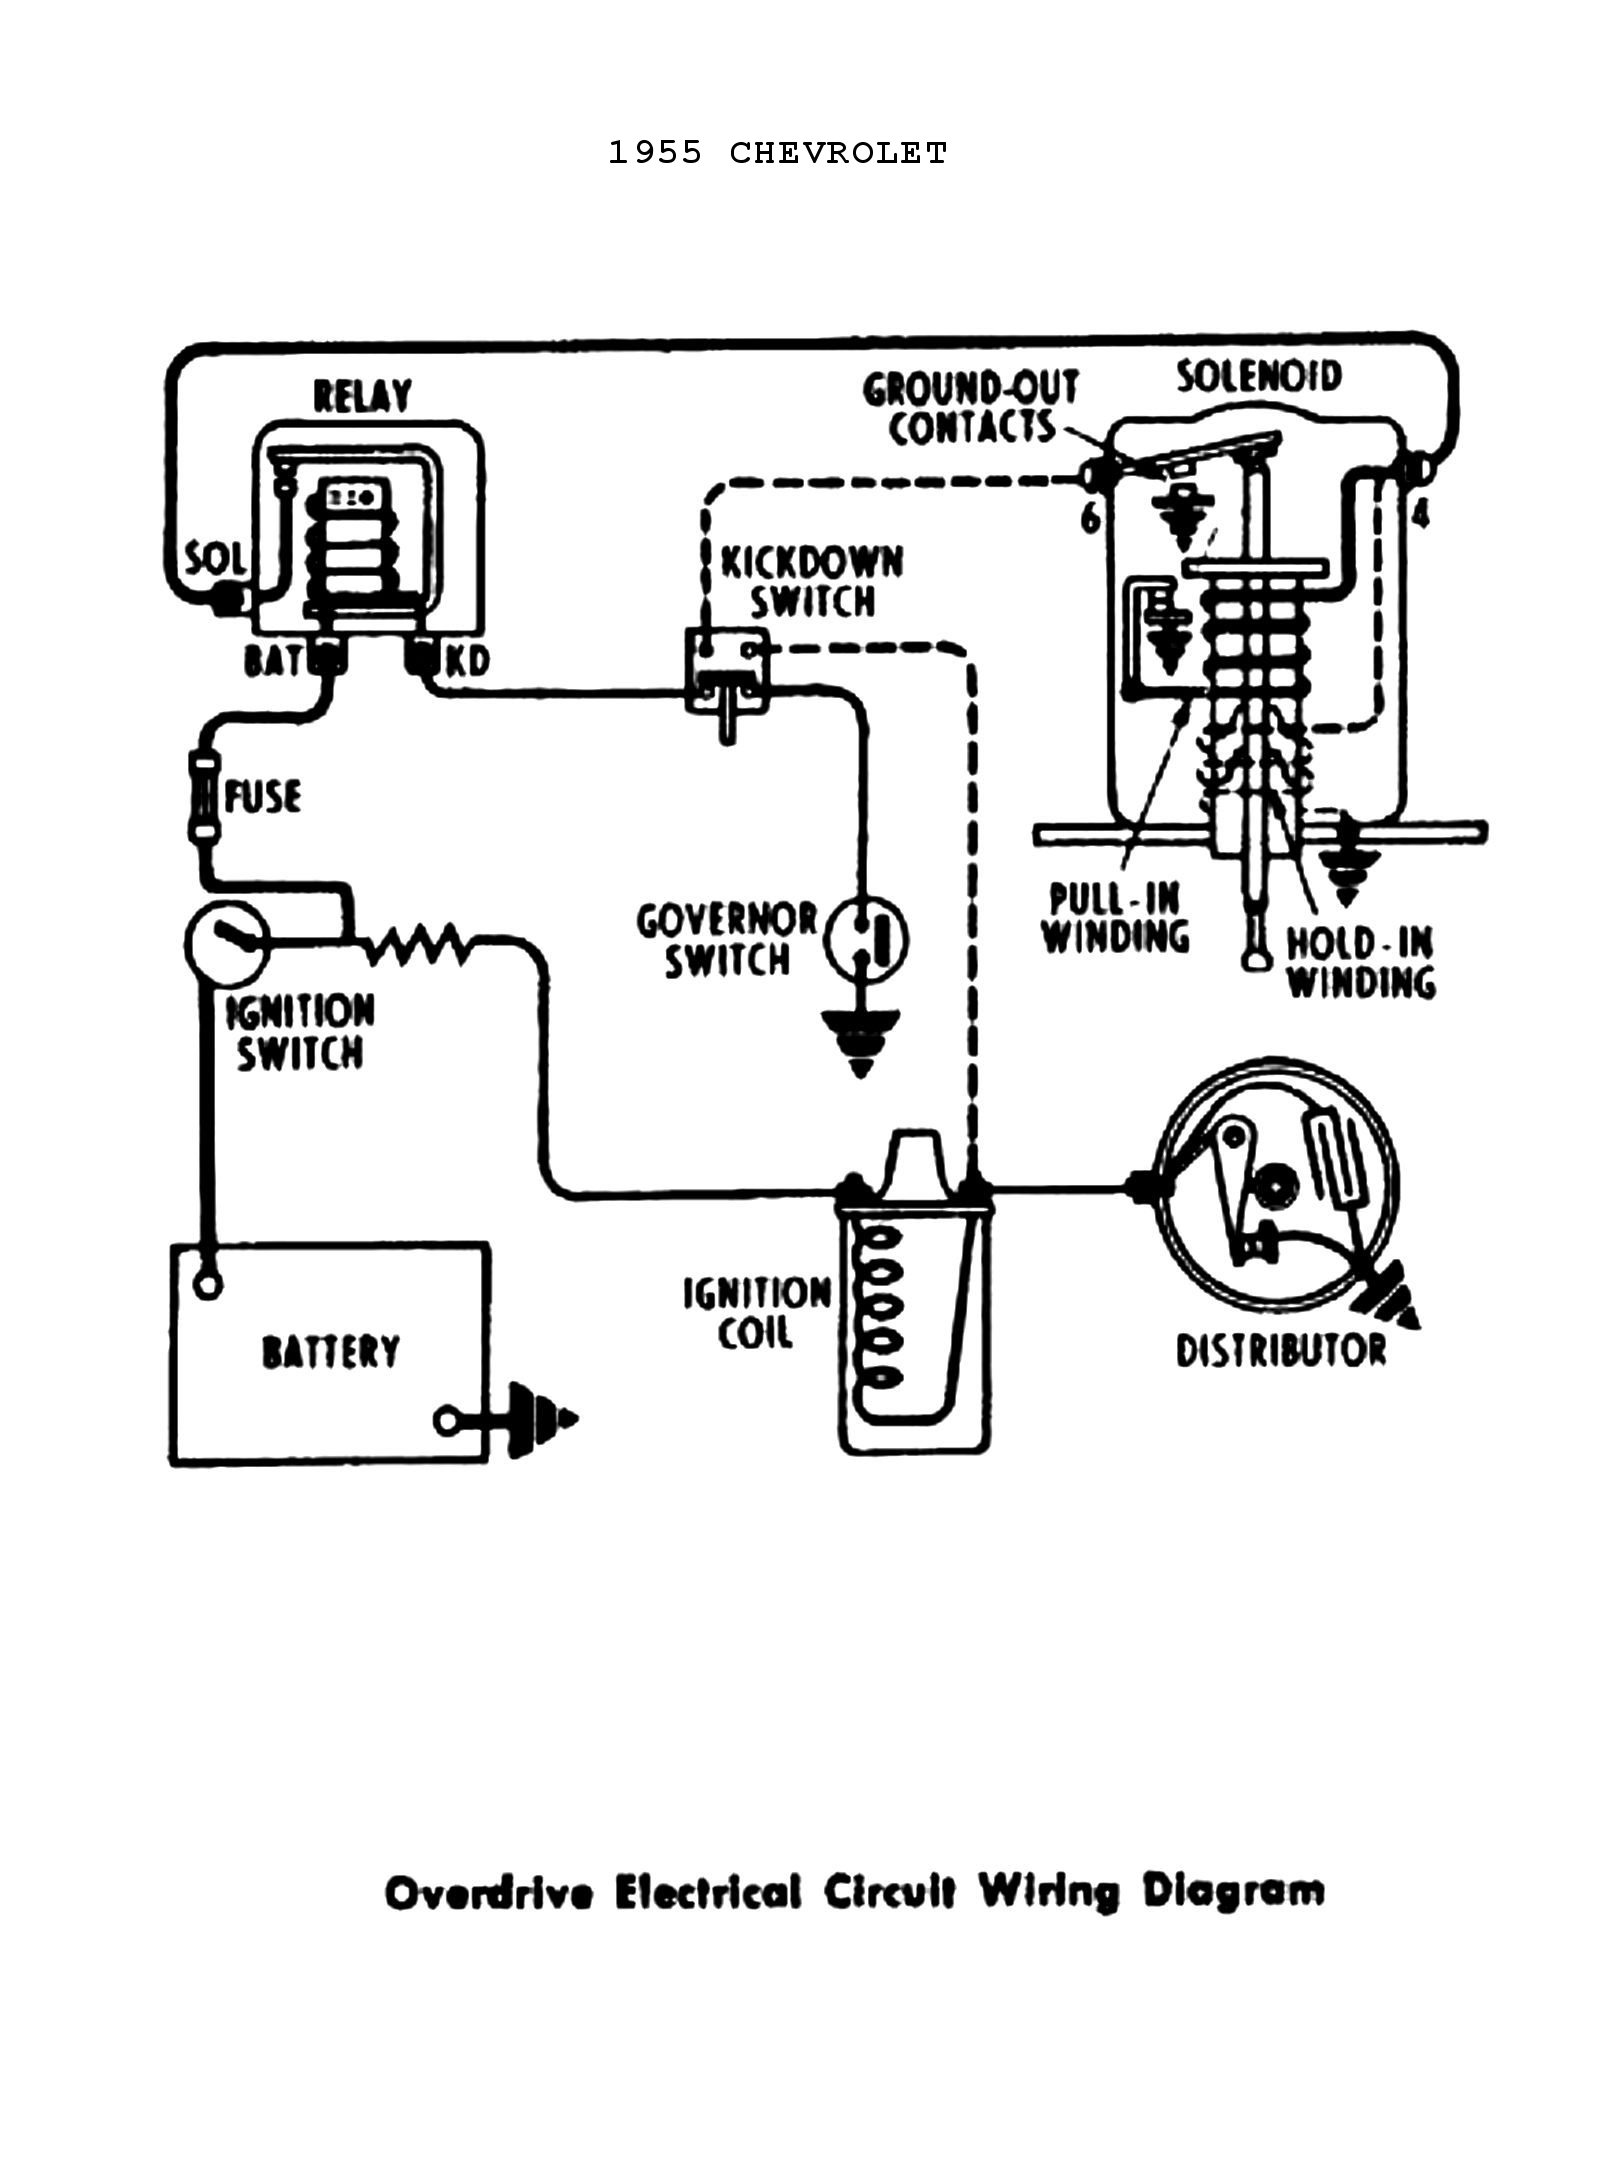 Chevrolet Ignition Wiring - Wiring Diagram Text thick-river -  thick-river.albergoristorantecanzo.itthick-river.albergoristorantecanzo.it